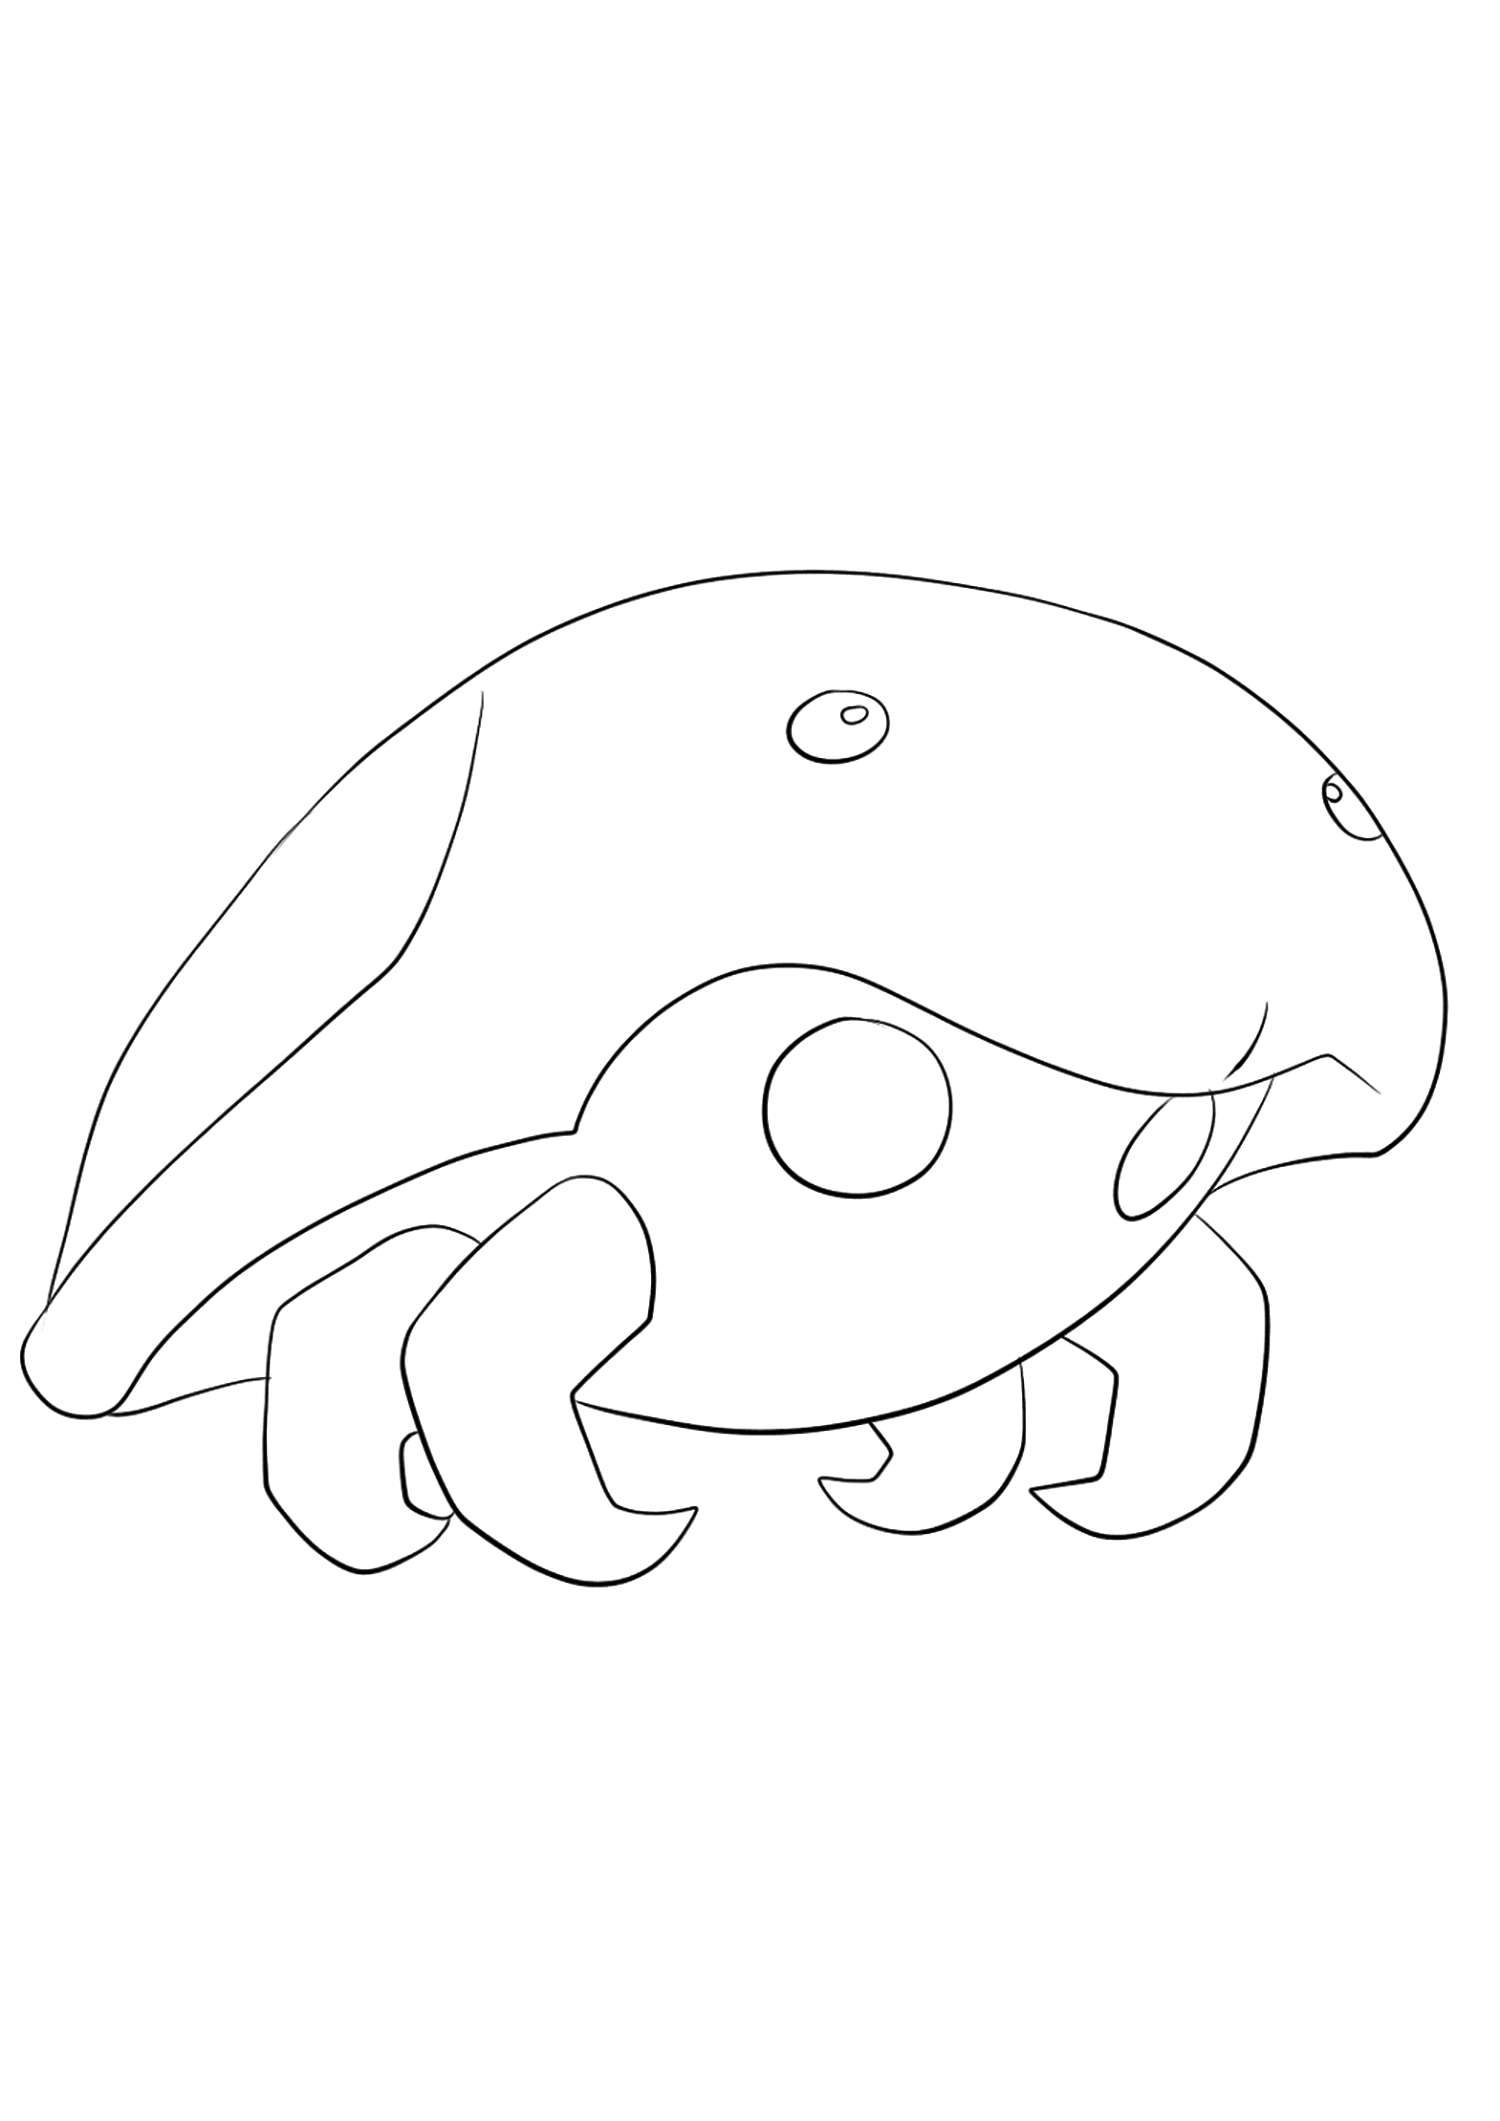 Kabuto (No.140)Kabuto Coloring page, Generation I Pokemon of type Rock and WaterOriginal image credit: Pokemon linearts by Lilly Gerbil on Deviantart.Permission:  All rights reserved © Pokemon company and Ken Sugimori.